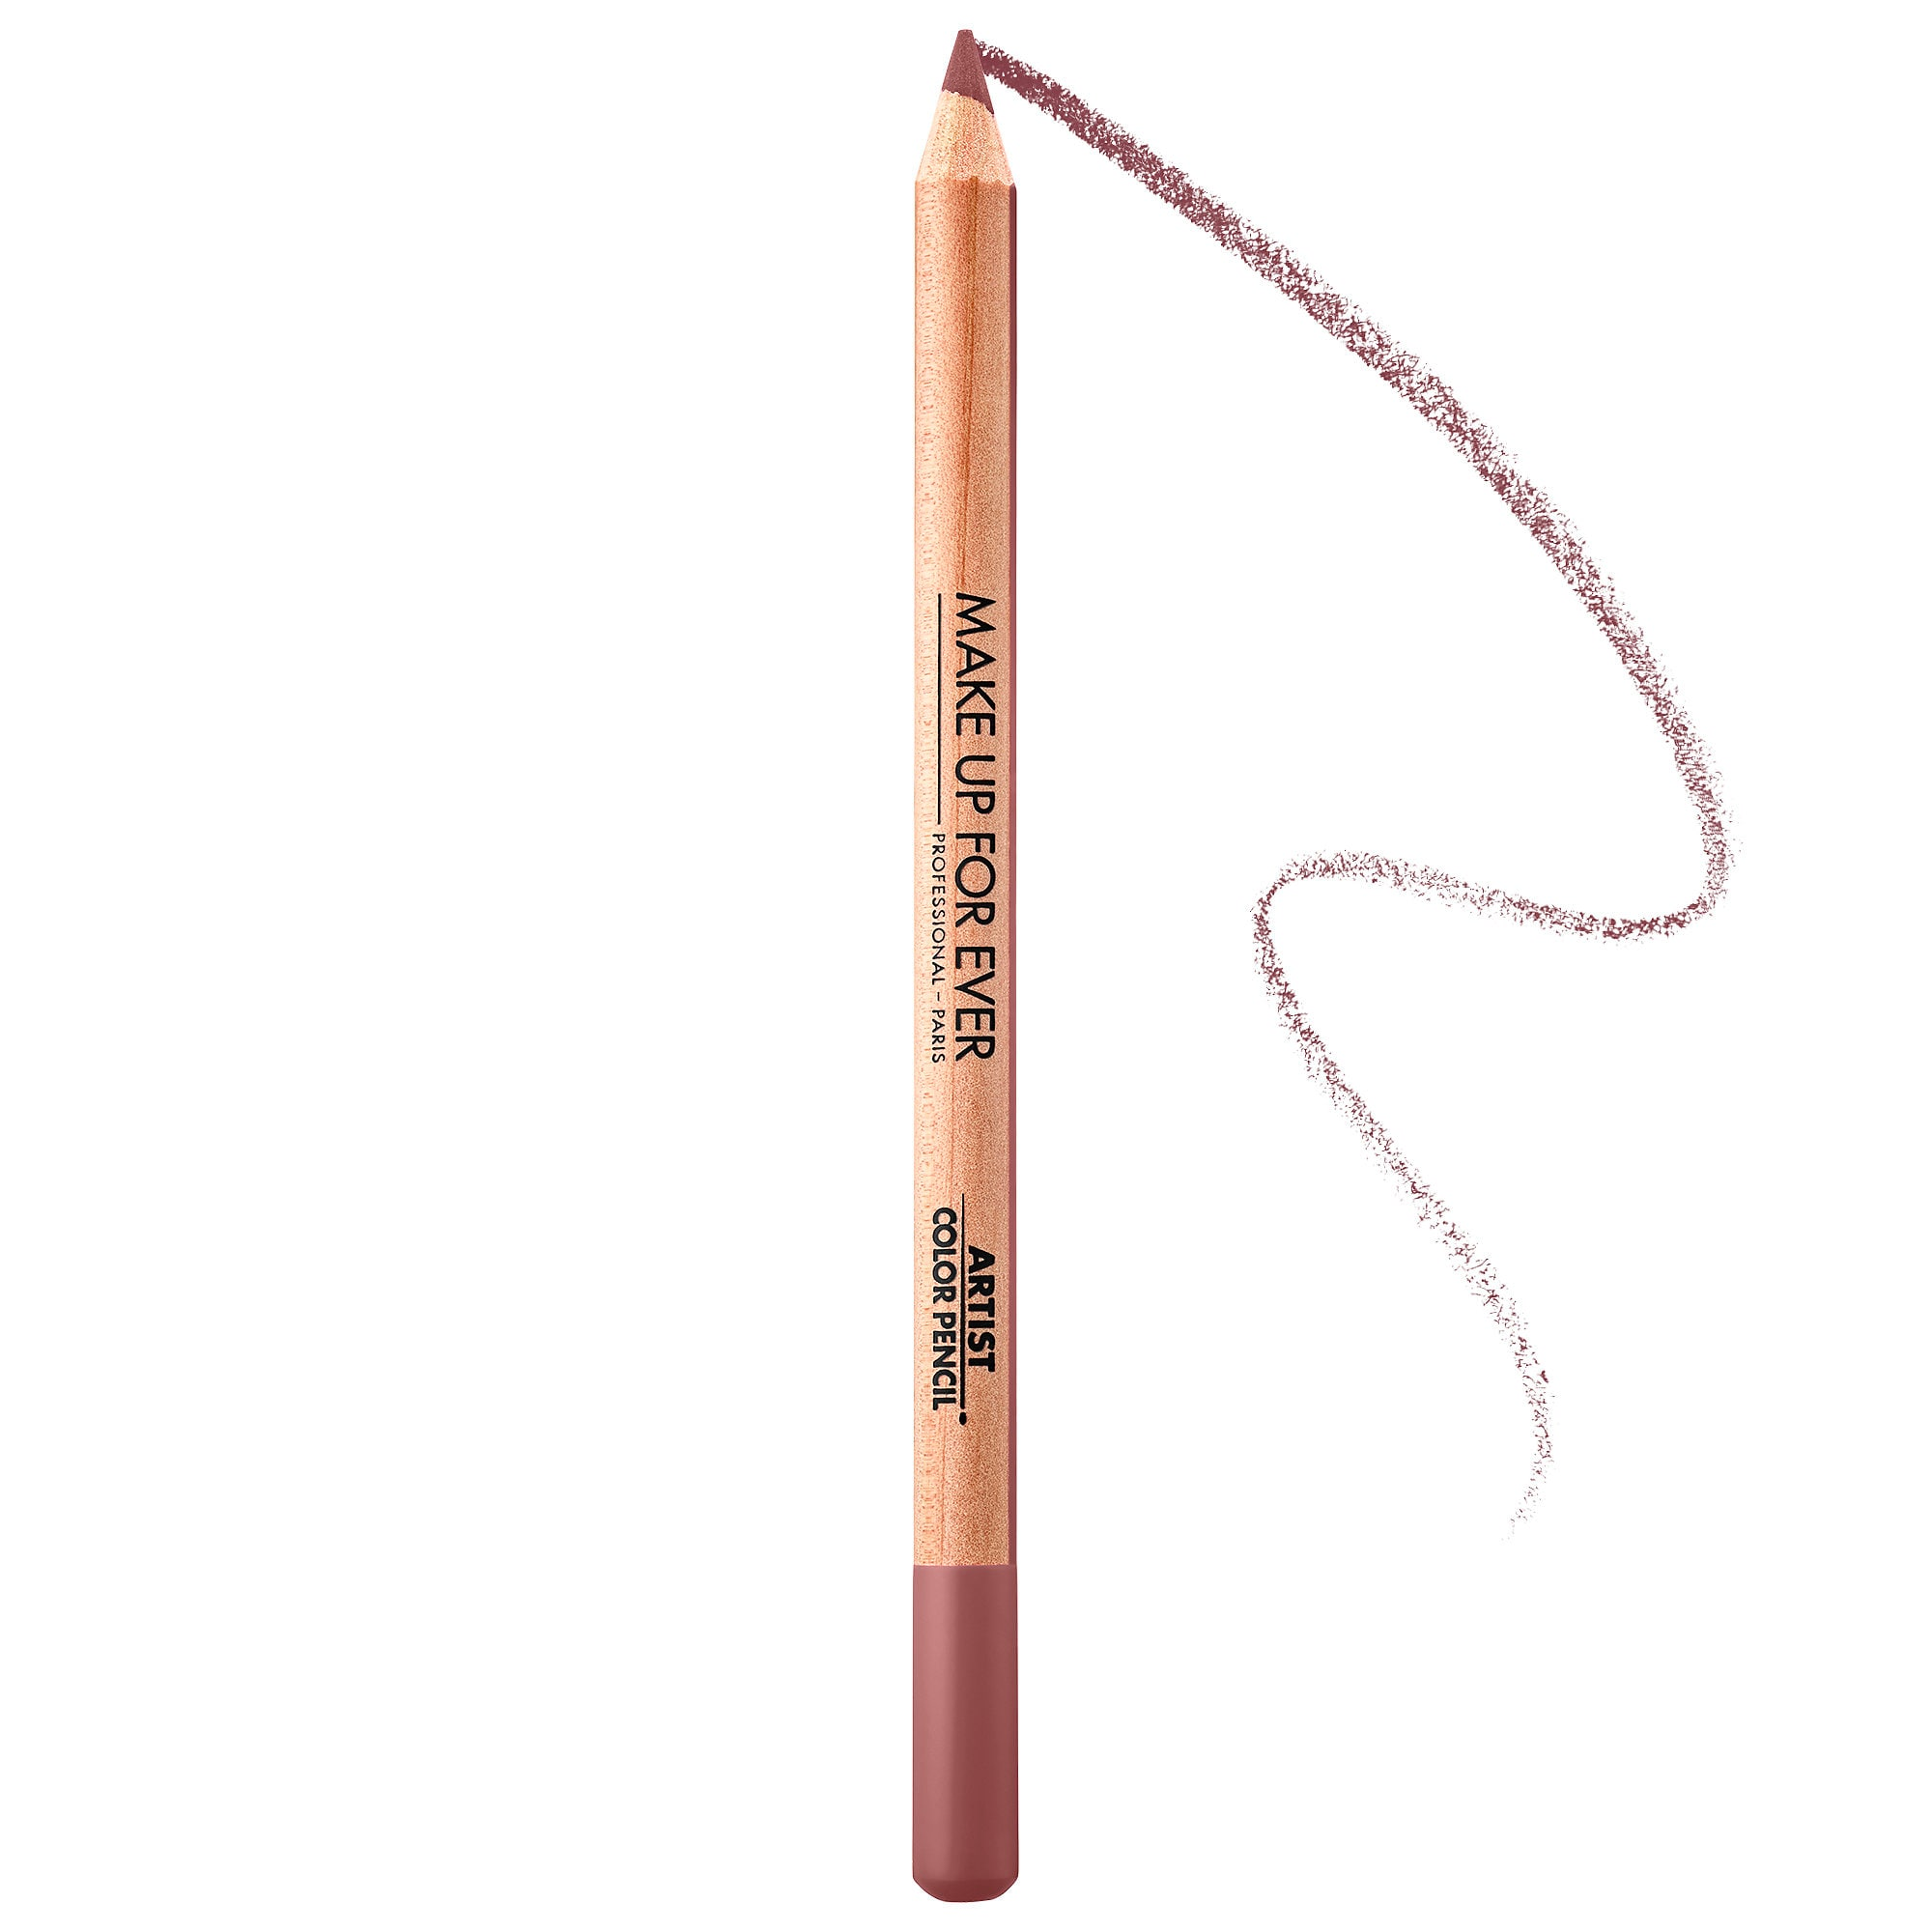 Artist Color Pencil: Eye, Lip & Brow Pencil